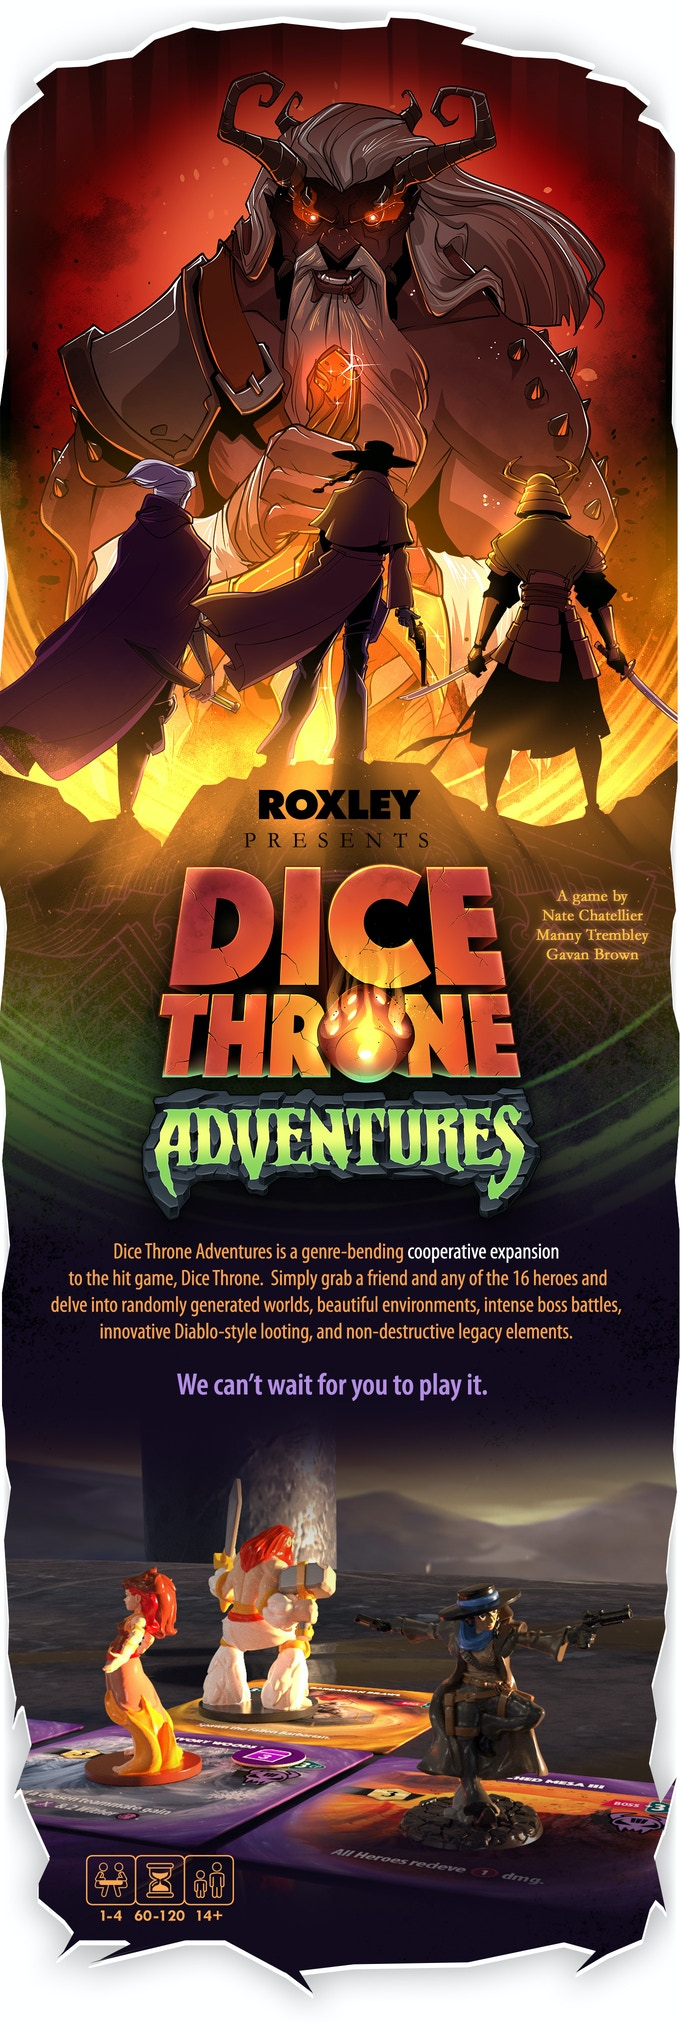 Dice Throne Adventures & Season One: Rerolled! by Dice